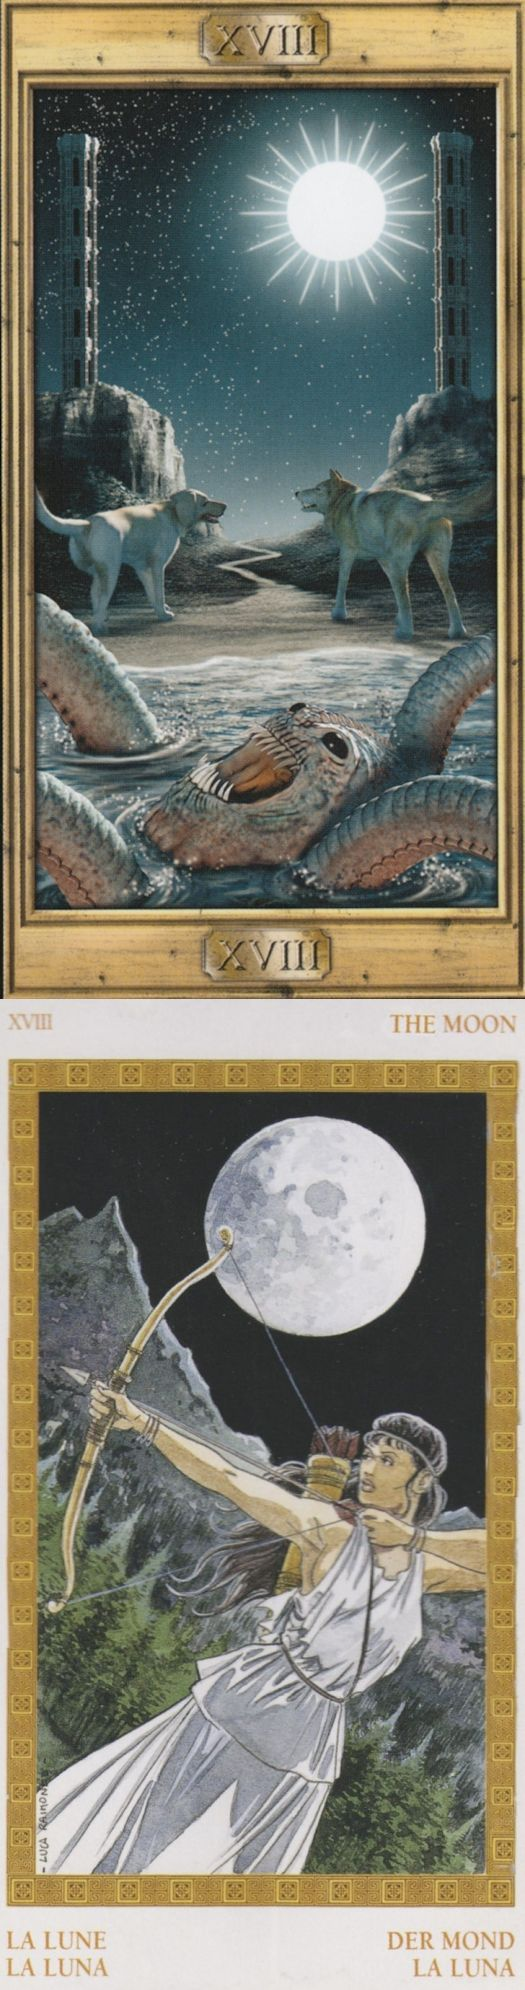 THE MOON: unconscious and confusion (reverse). Pictorial Tarot deck and Olympus Tarot deck: tarotde marseille, tarotlot vs free tarot reading on line. New fortune telling machine and tarot art nouveau. #hangedman #android #wicca